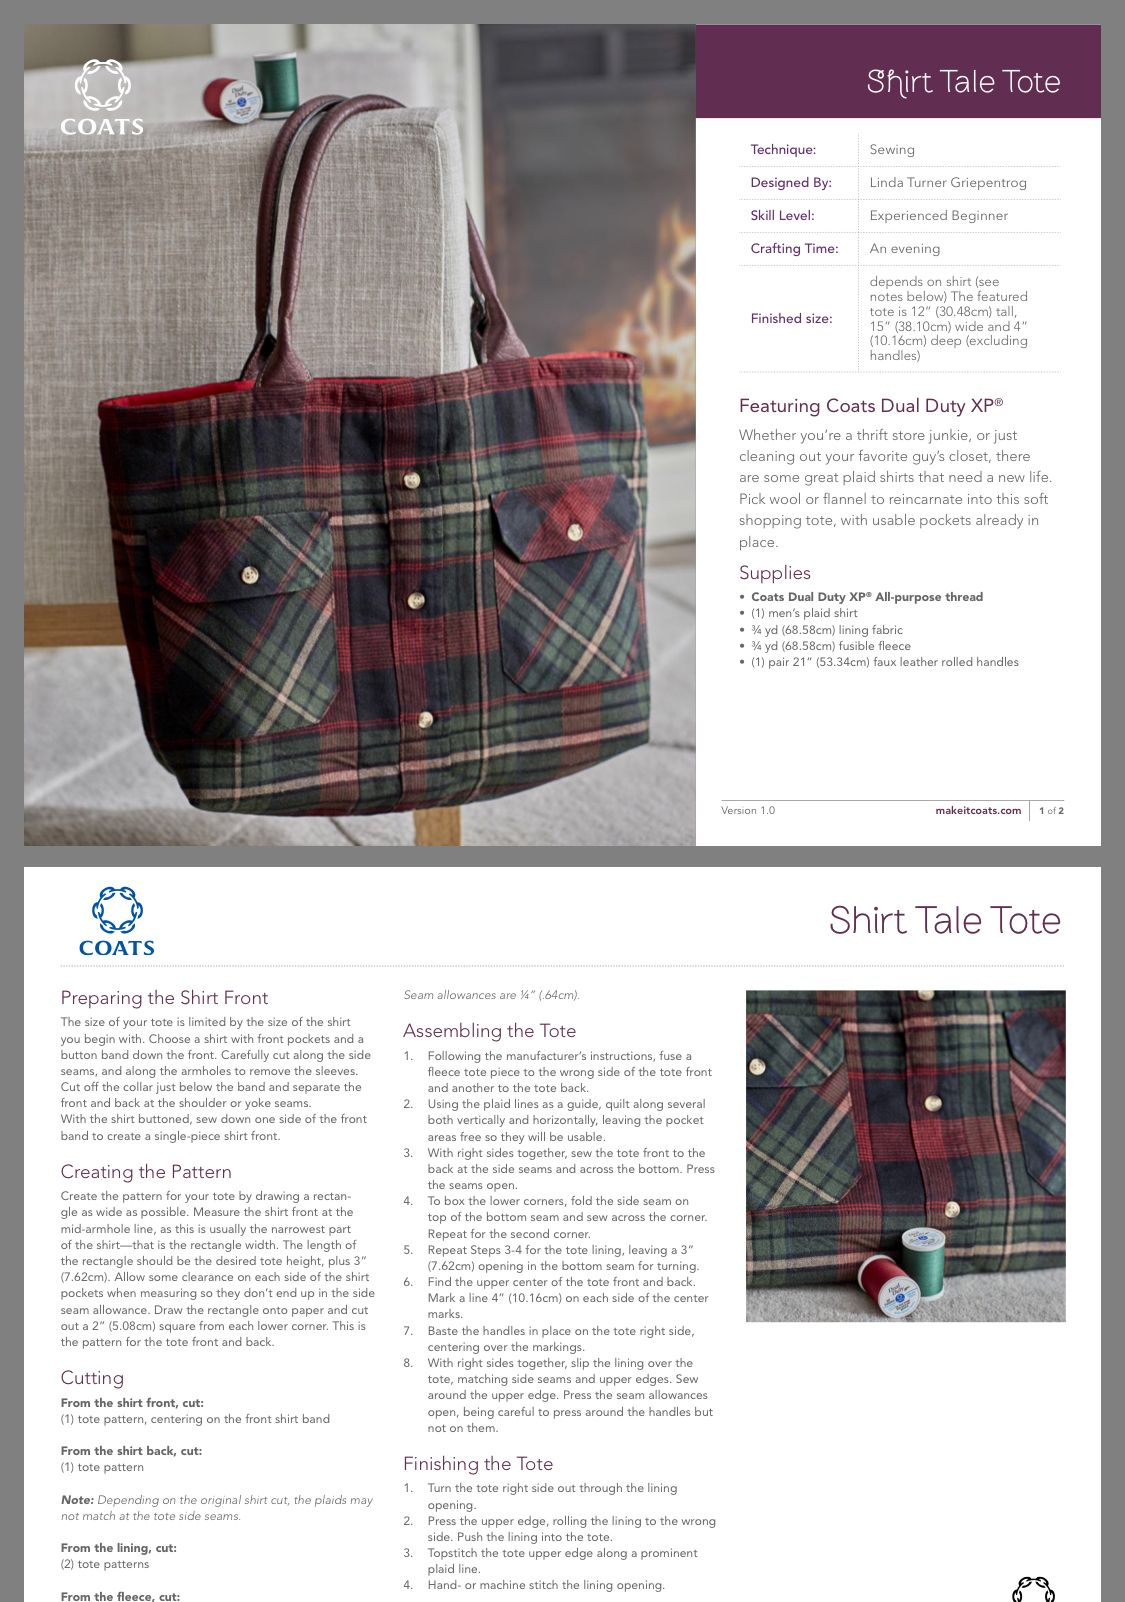 Pin by Bernice Hodges on Sewing (With images) Tote bag